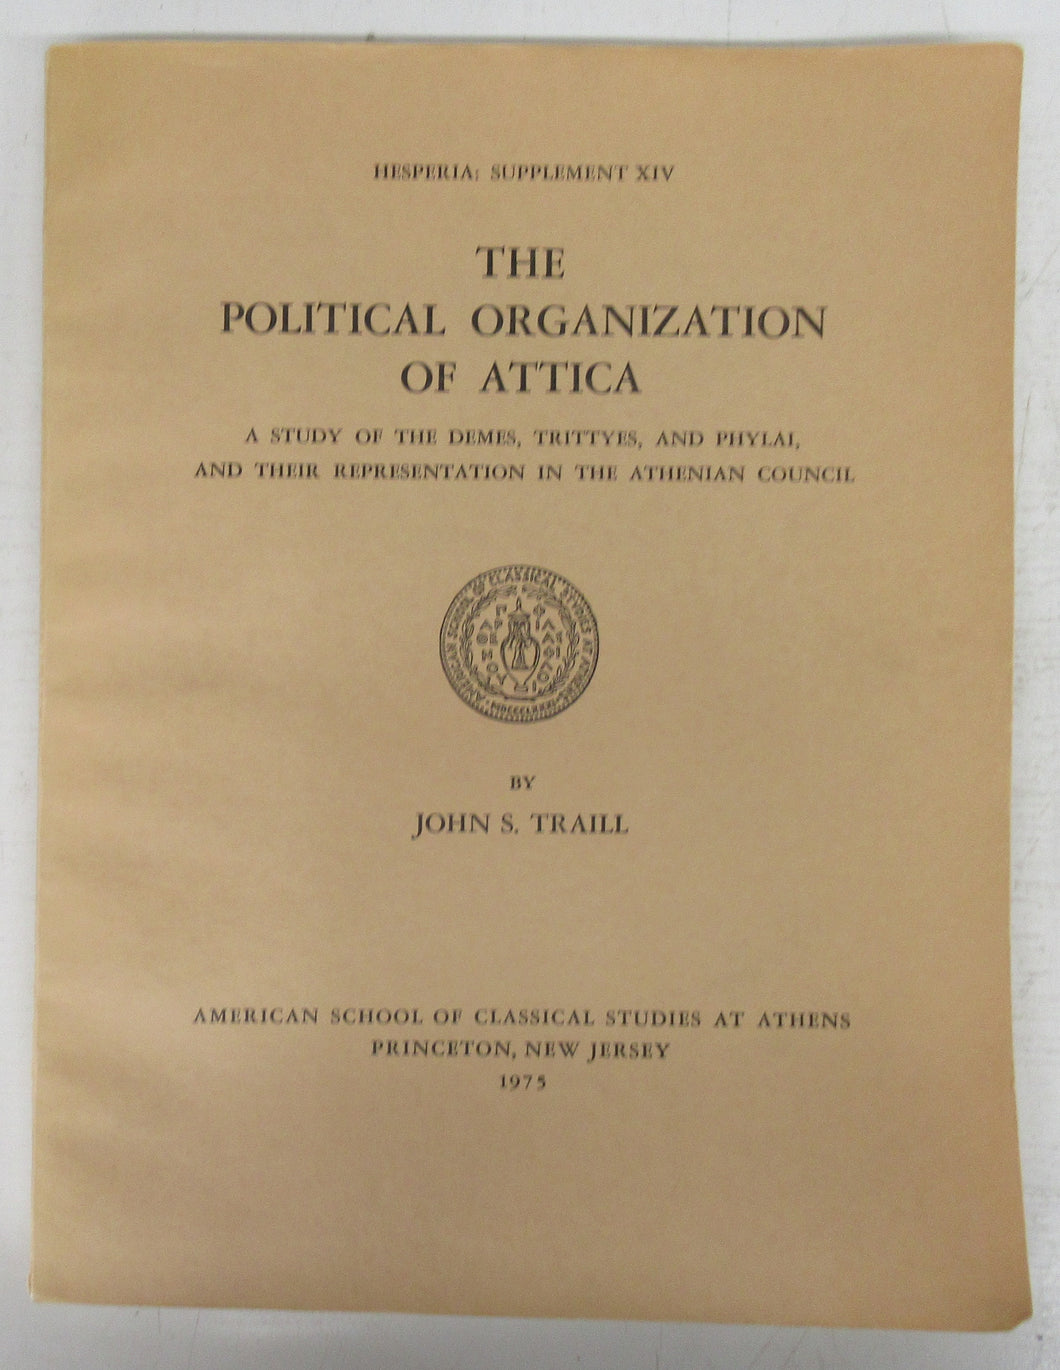 The Political Organization of Attica. A Study of the Demes, Trittyes, and Phylai, and their Representation in the Athenian Council